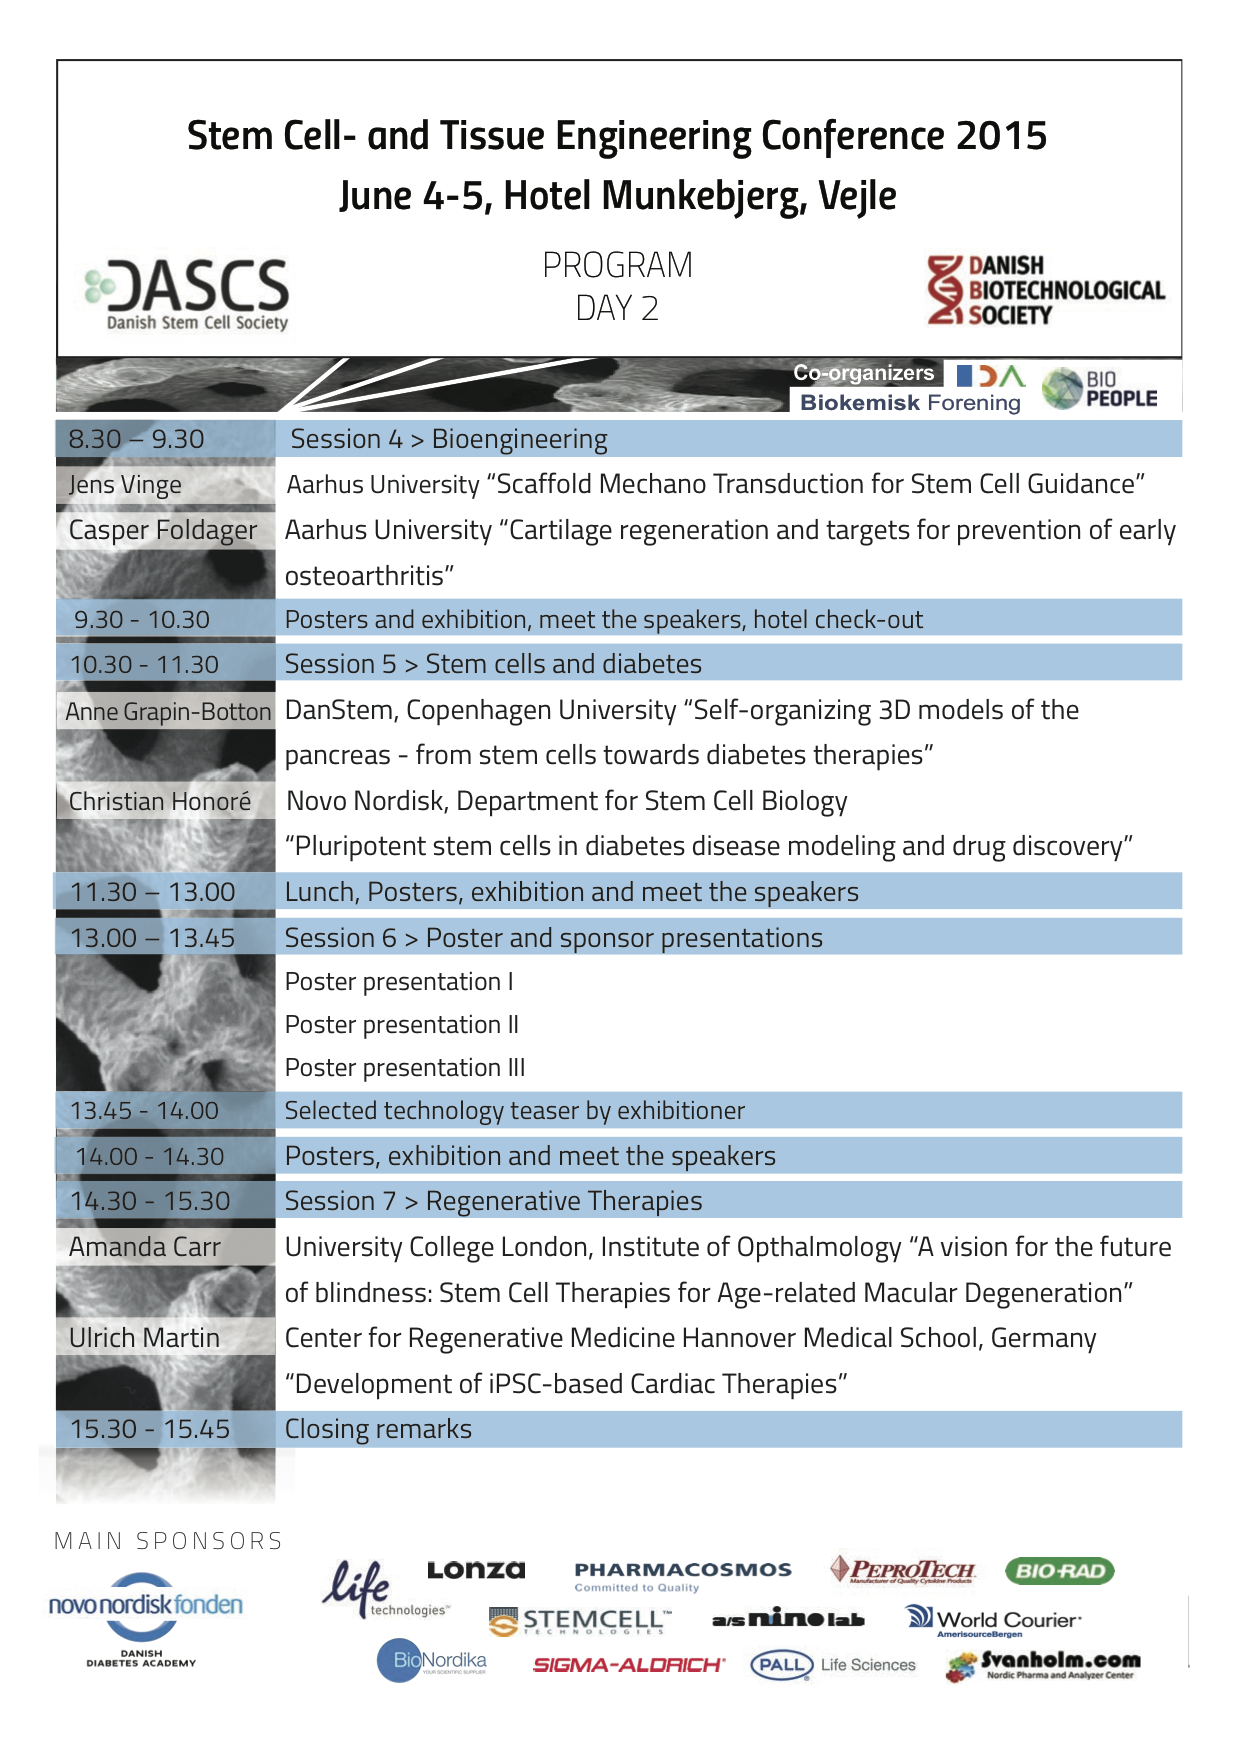 DASCS 2015 Program v10_DAY2A